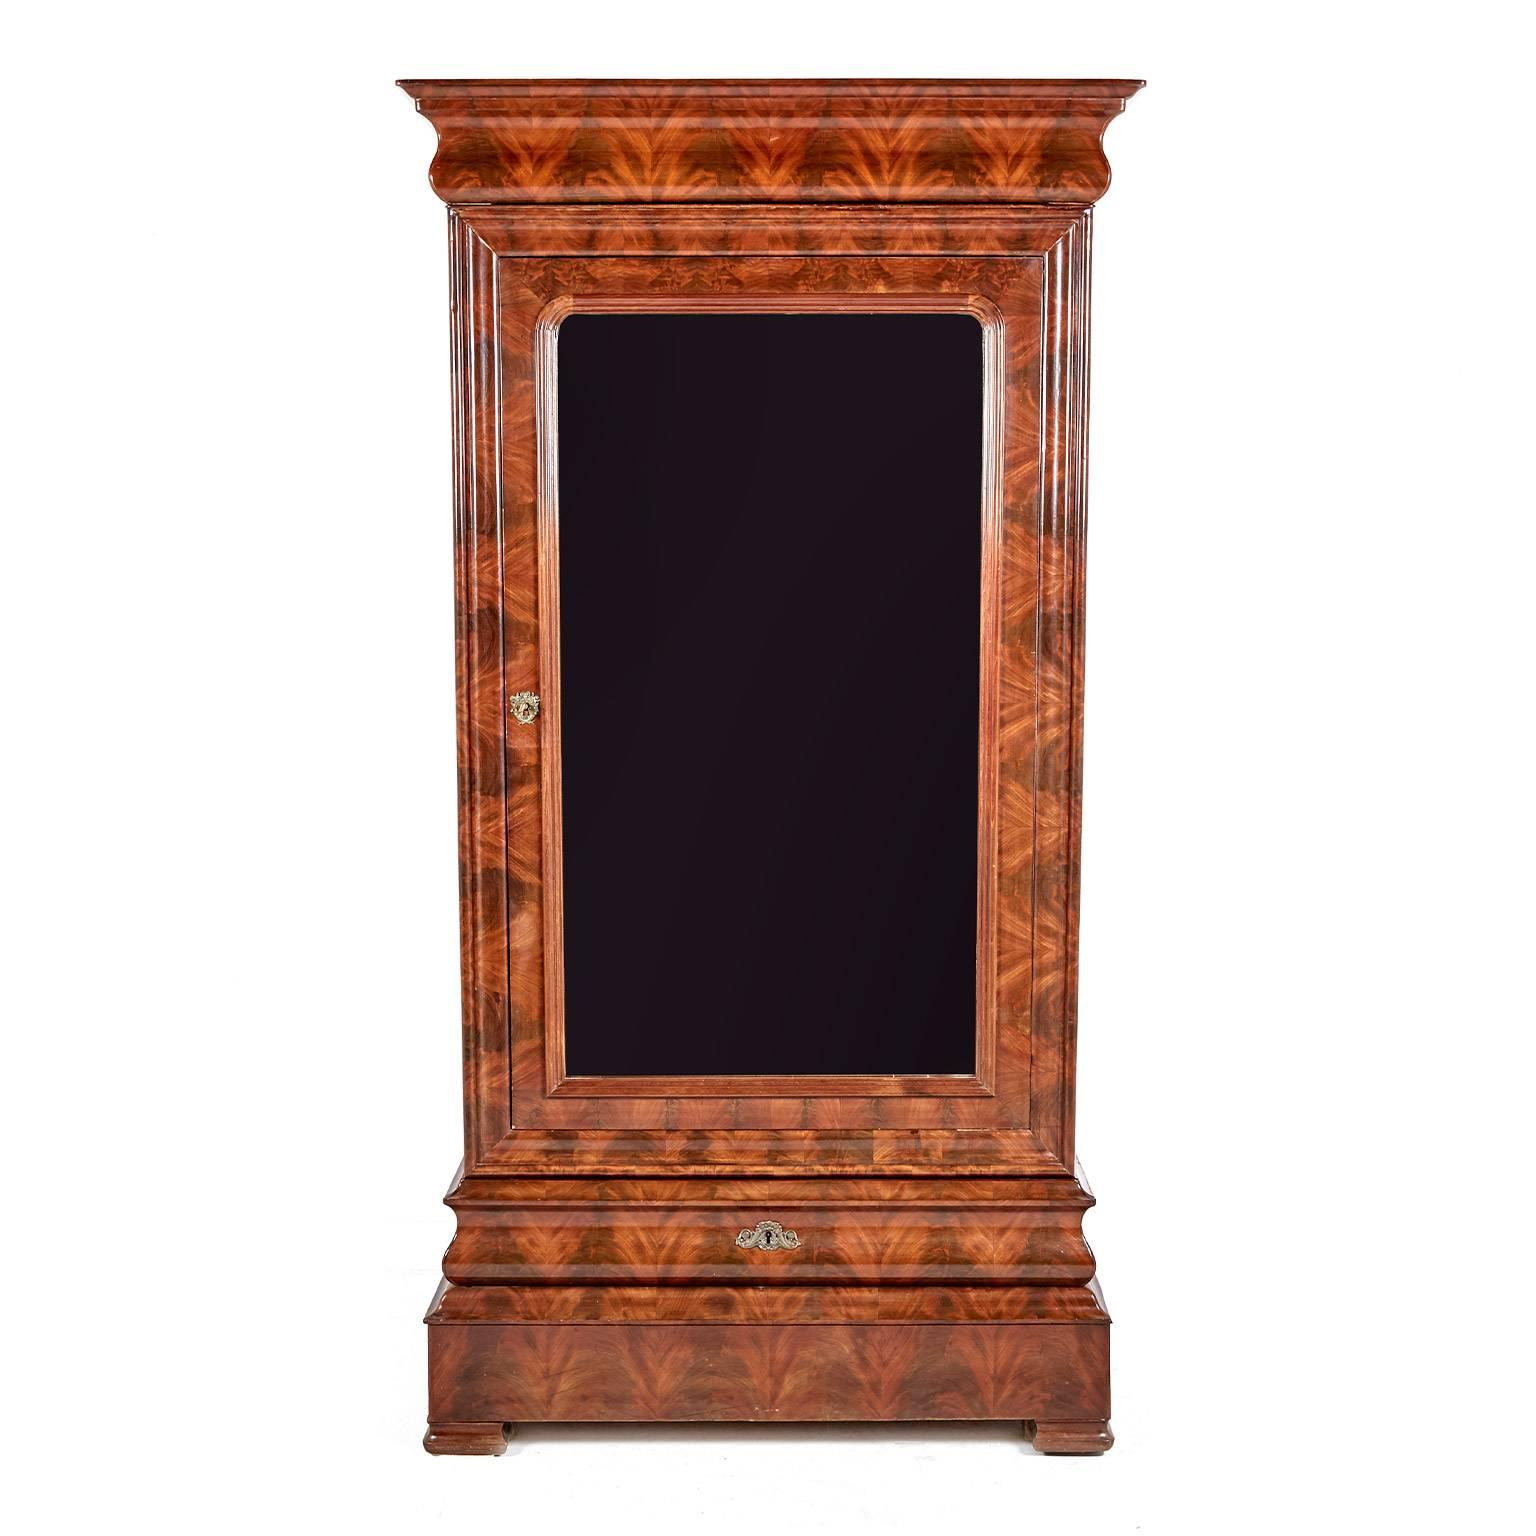 Antique French Louis Phillippe Flame Mahogany Armoire, Circa 1840